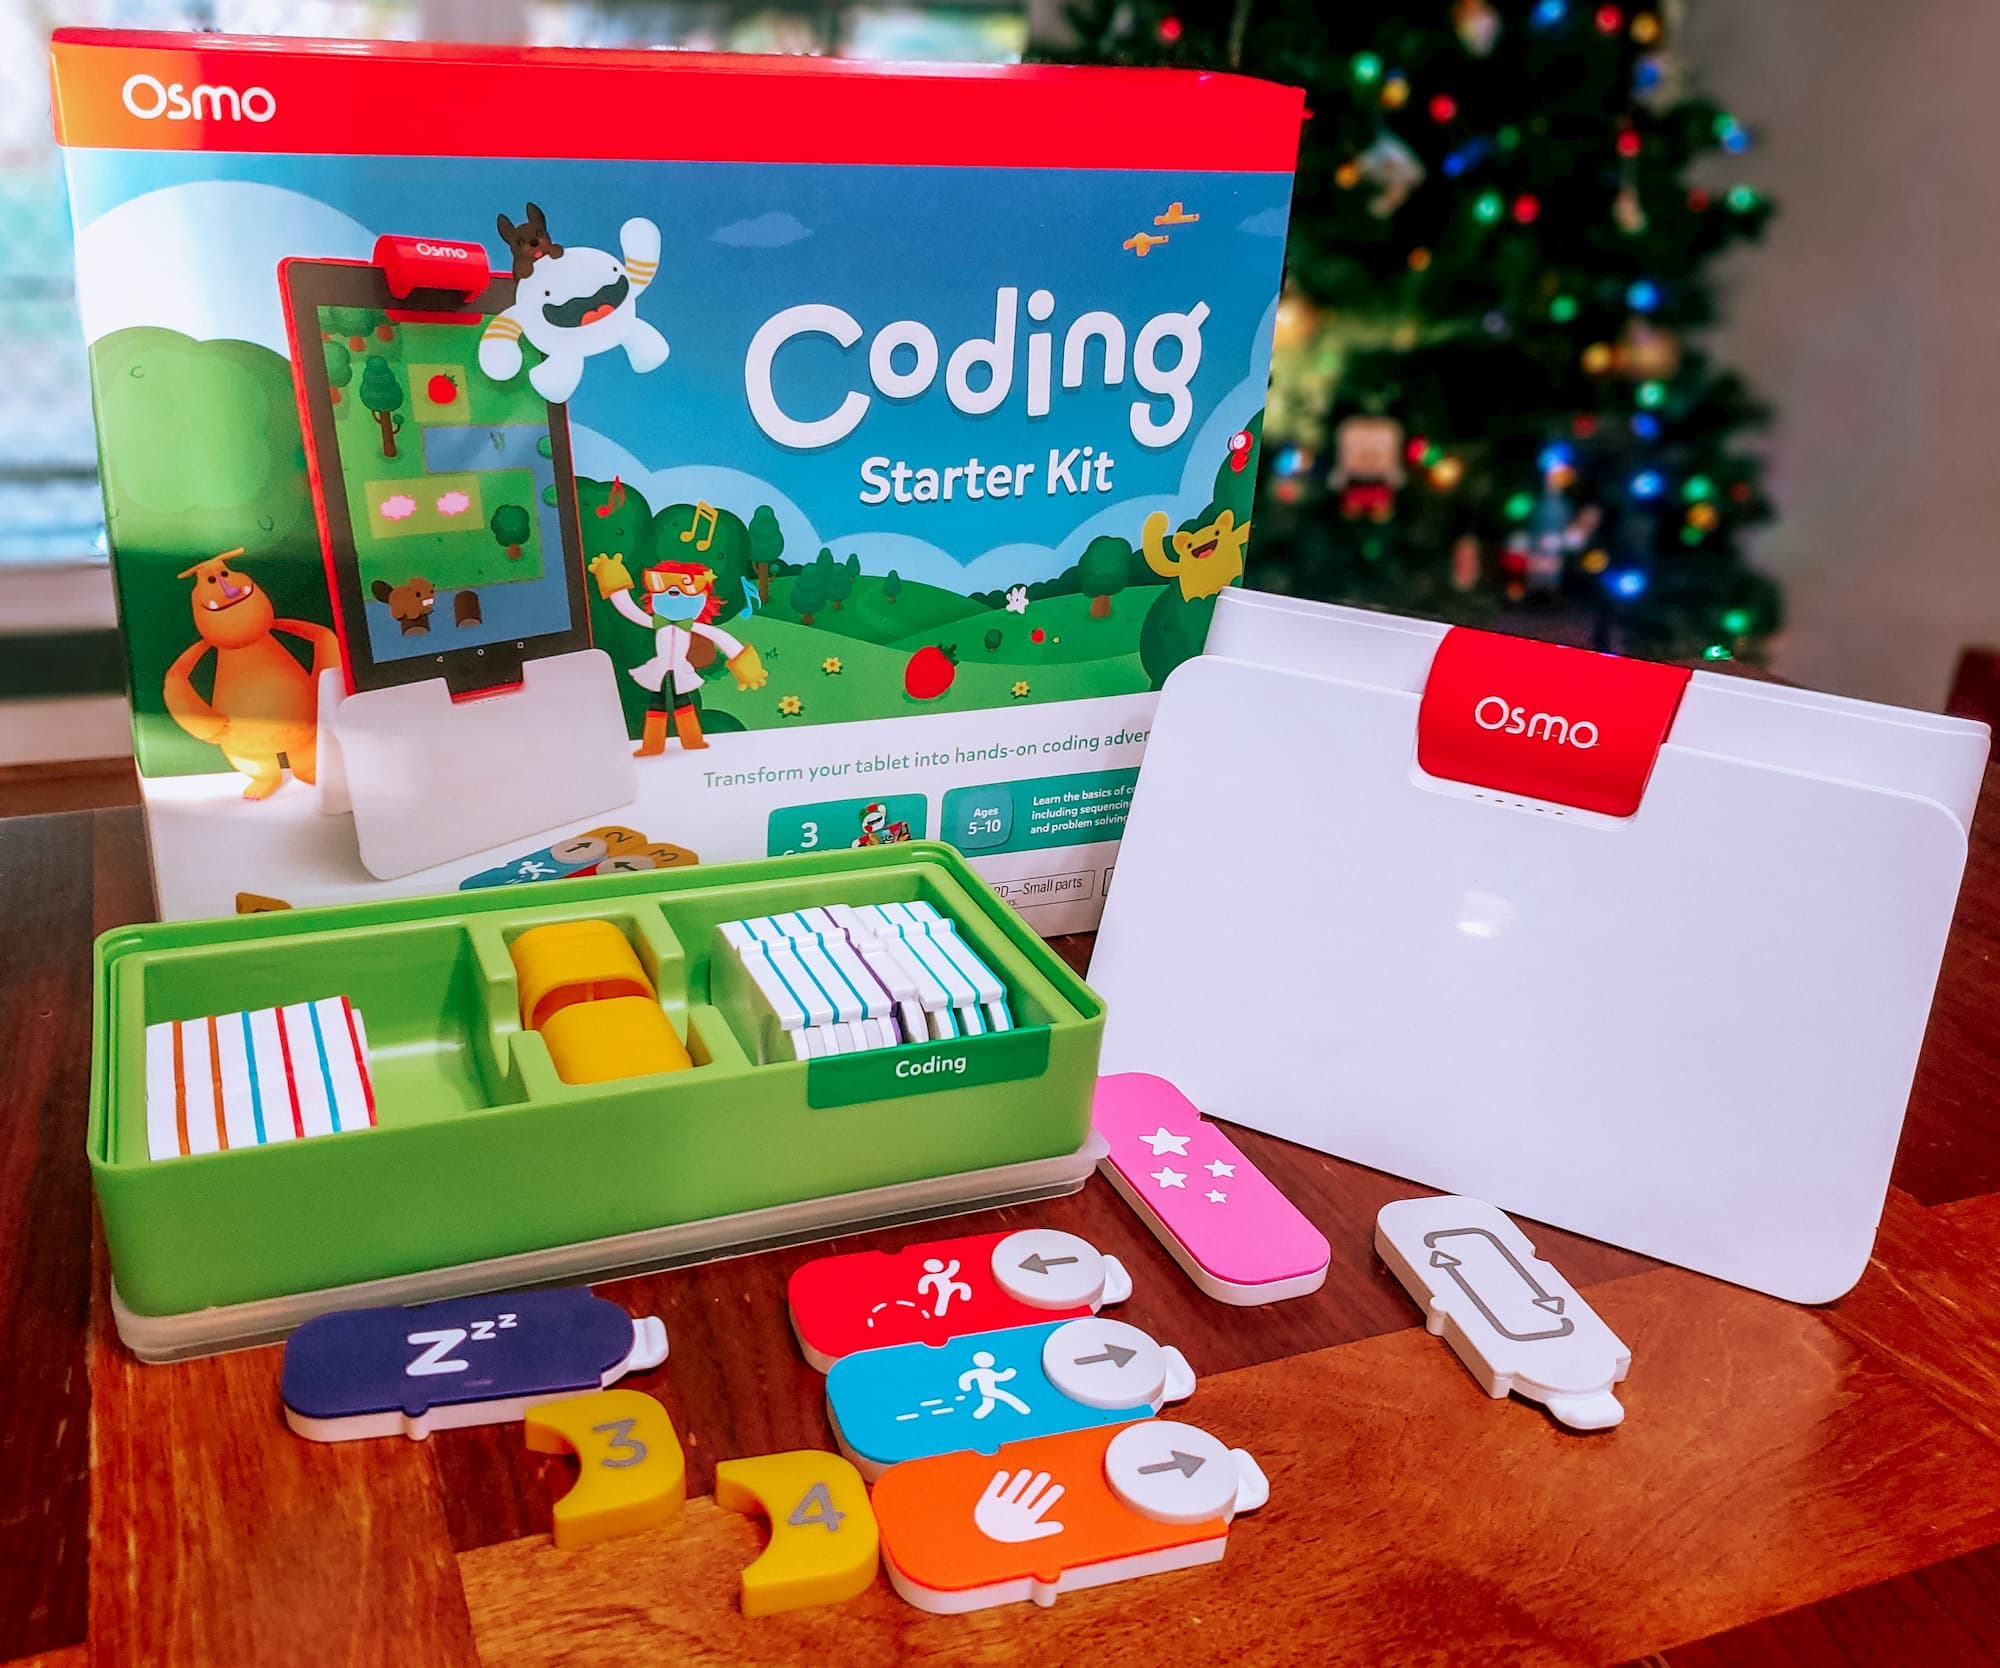 Play Osmo Coding Starter Kit Review